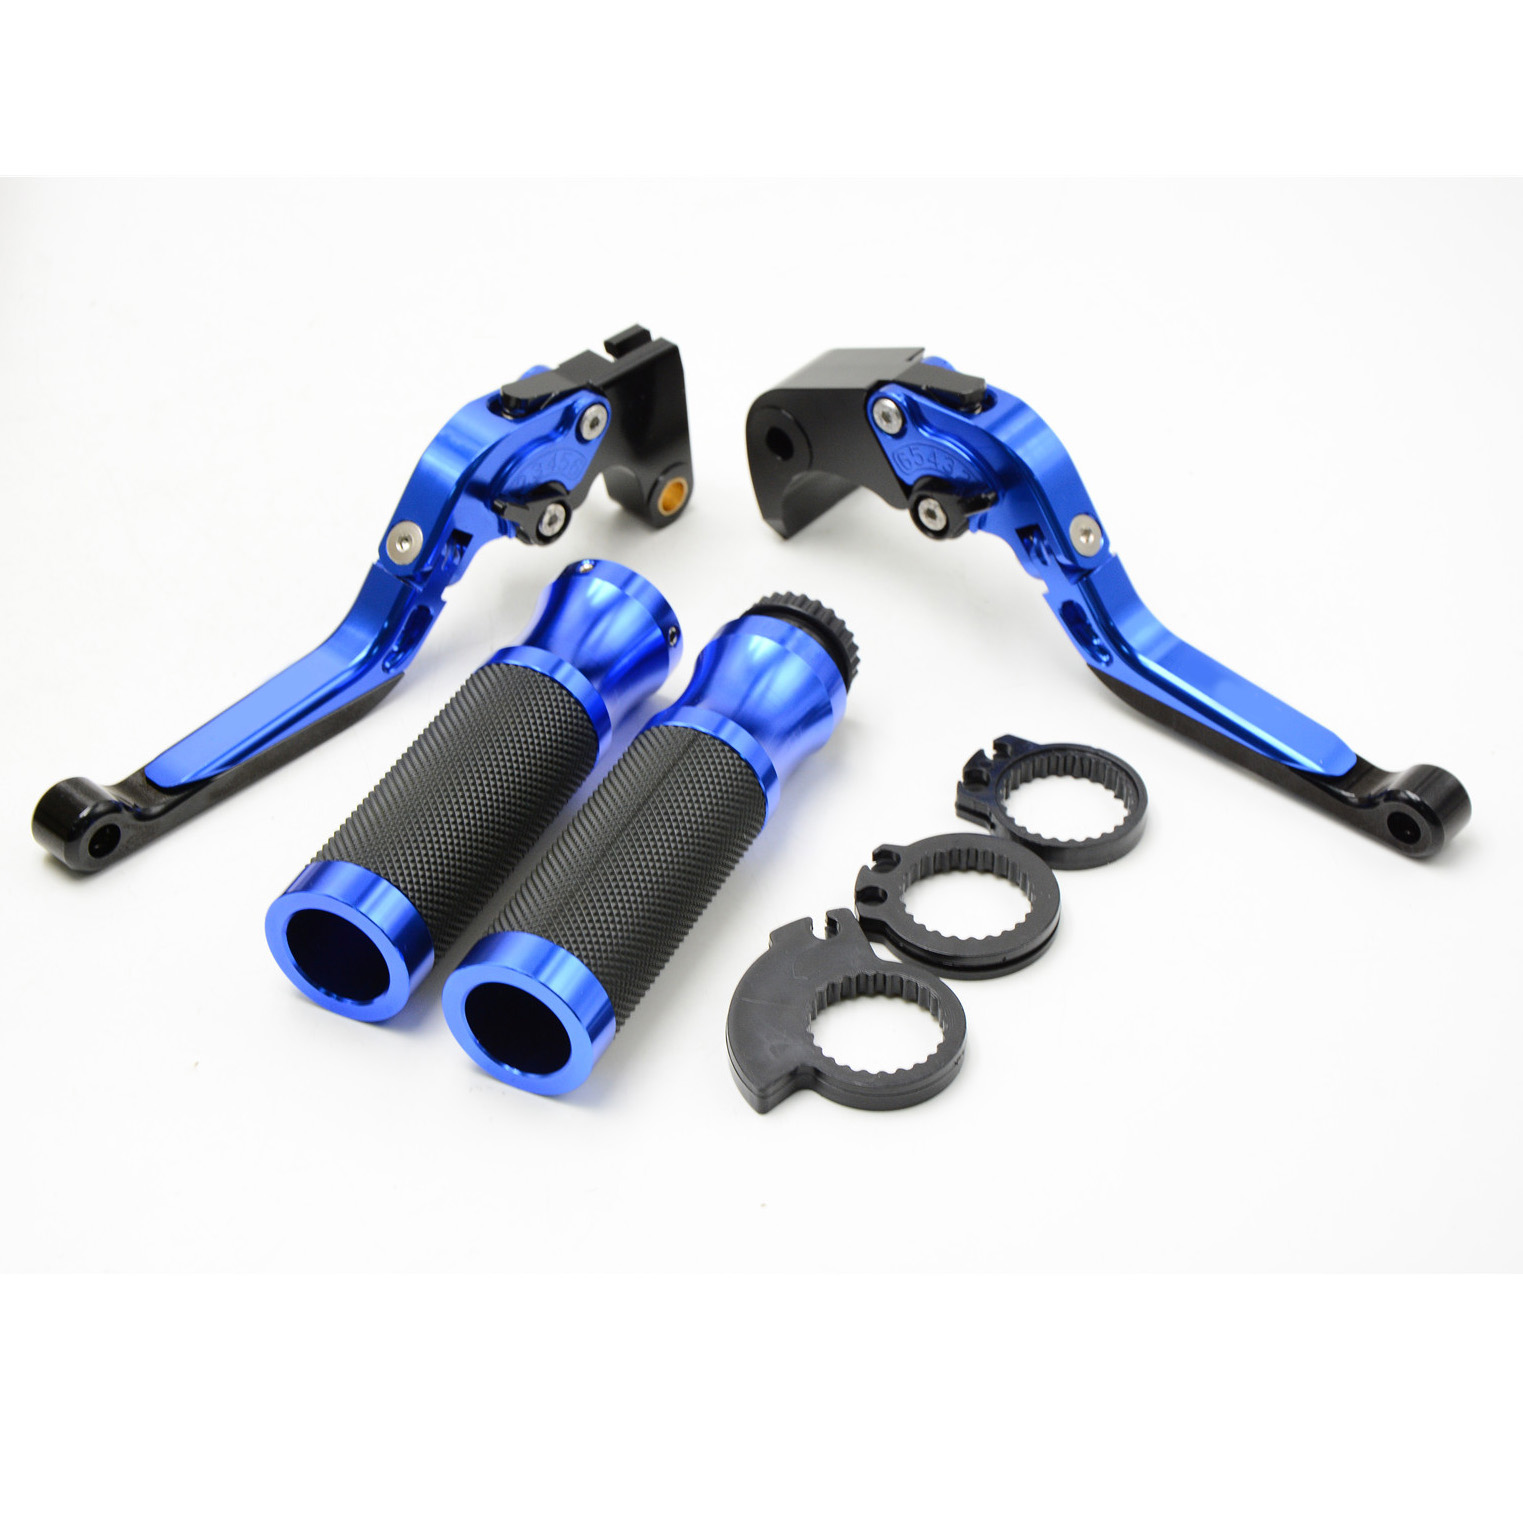 CNC Motorcycle Brake clutch lever handle grips For YAMAHA YZF R6 1999 2000 2001 2002 2003 2004 short clutch brake levers for yamaha yzf r6 1999 2004 cnc 2000 2001 2002 2003 blue adjustable 10 colors